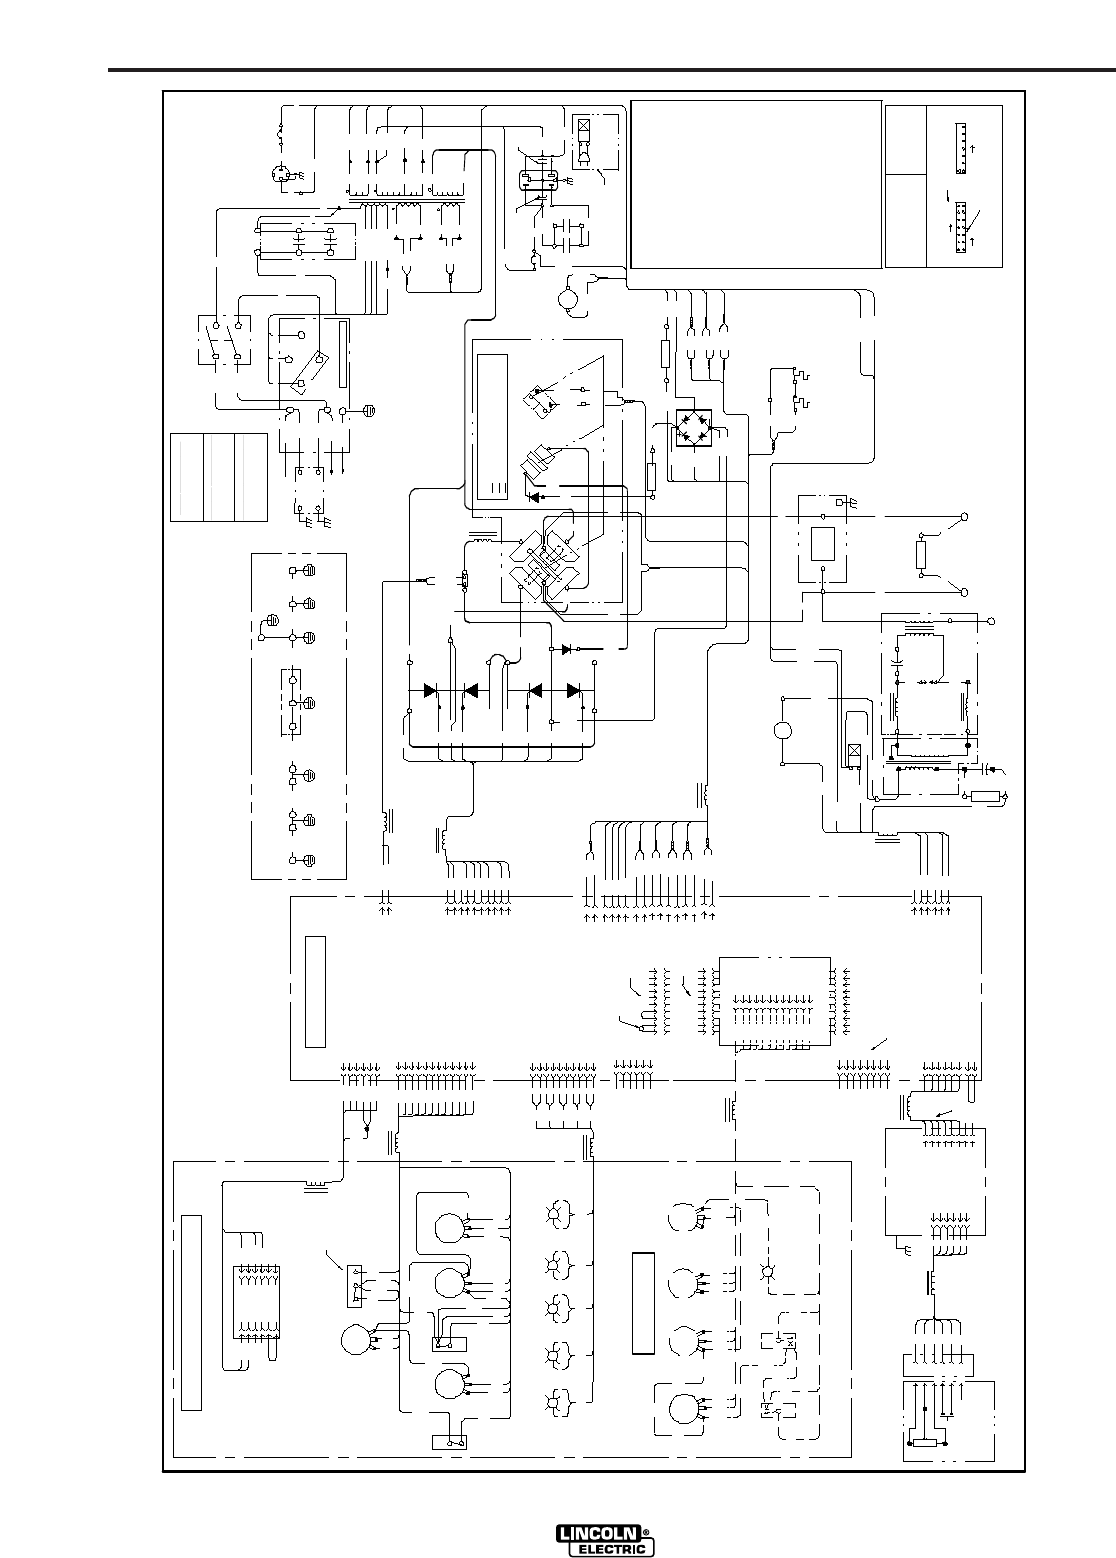 mig welder wiring diagram pdf with Lincoln 225 Gas Welder Wiring Diagrams on Bobcat Fuel Gauge Wiring Diagrams as well 91 94 240sx Vaccuum Diagrams  ponent Locaters as well Wiring Diagram For Kubota Rtv 1100 further Spot Welding Parts Diagram together with Diagram For Welding.